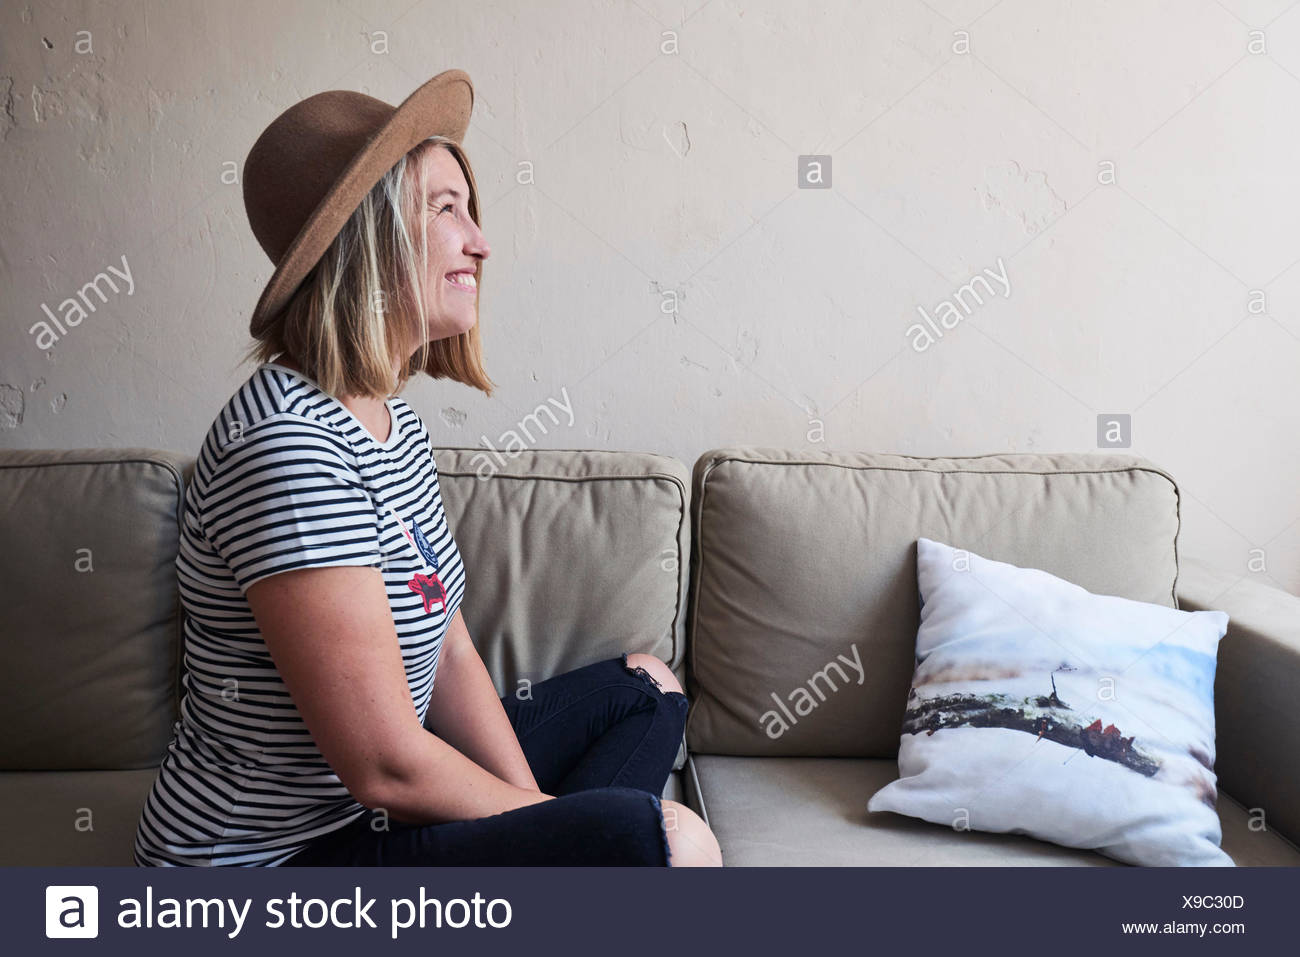 Woman sitting on sofa, smiling, side view - Stock Image